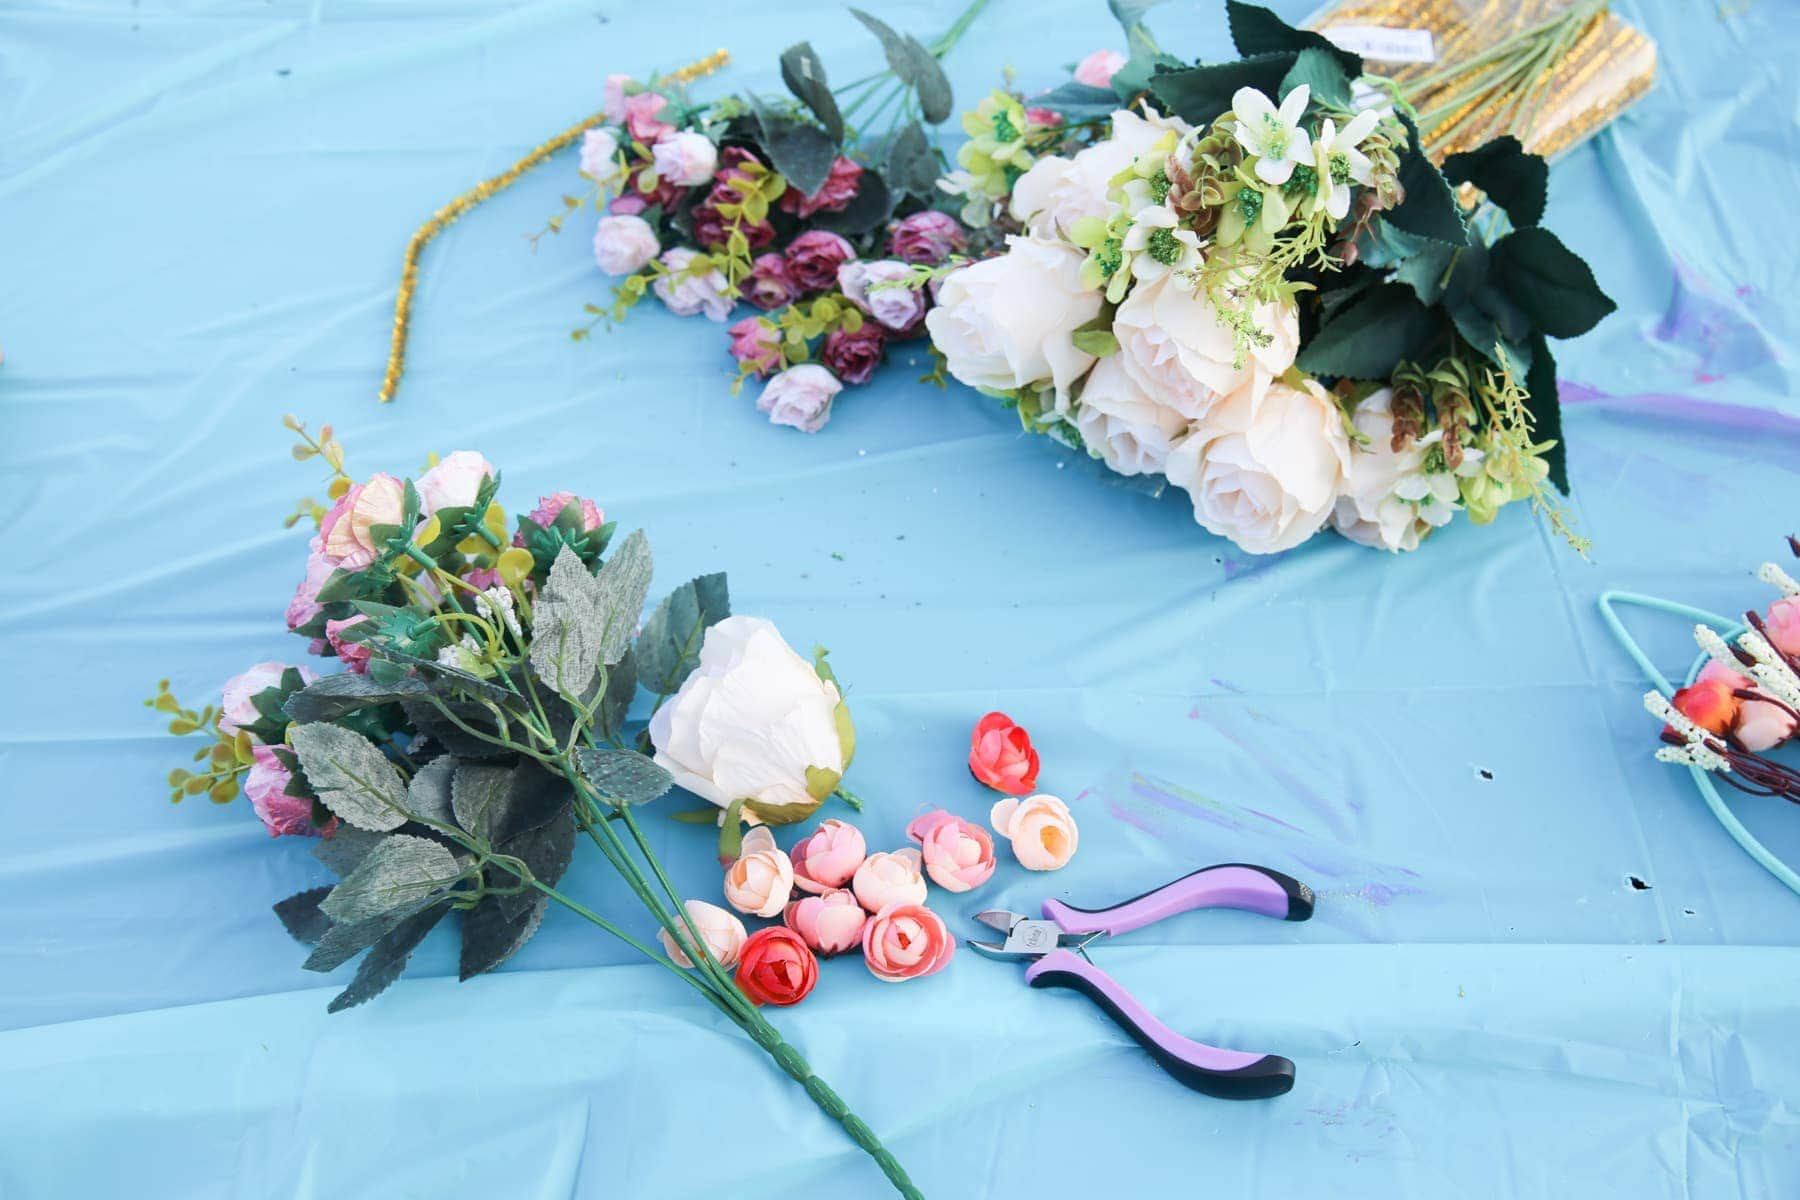 Diy kitten flower crown 10 kitten flower crowns glue gun silk flowers gold pipe cleaners wire cutter izmirmasajfo Images